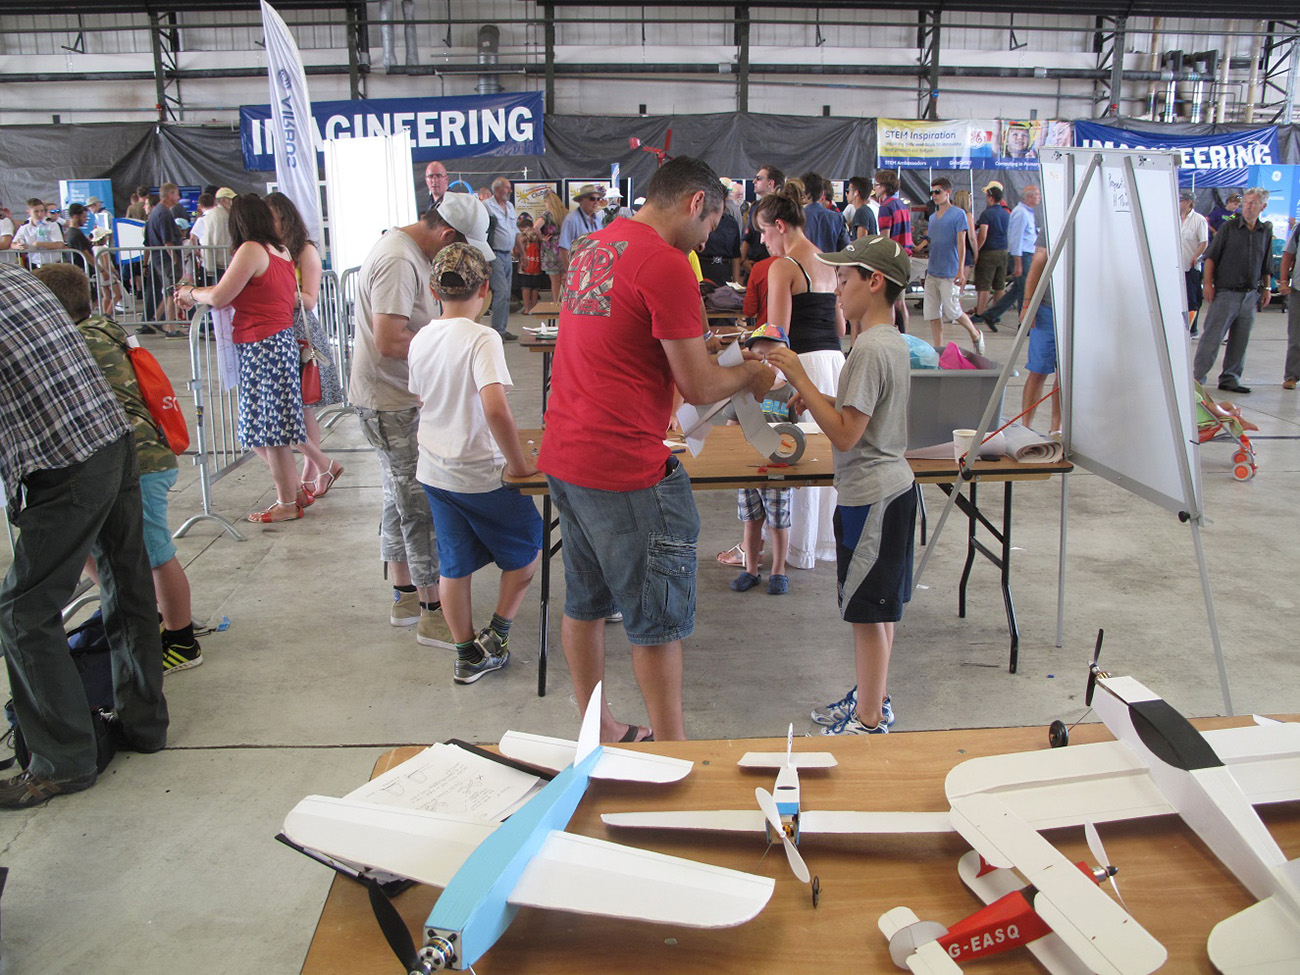 Inspiring the next generation of engineers at Air Day